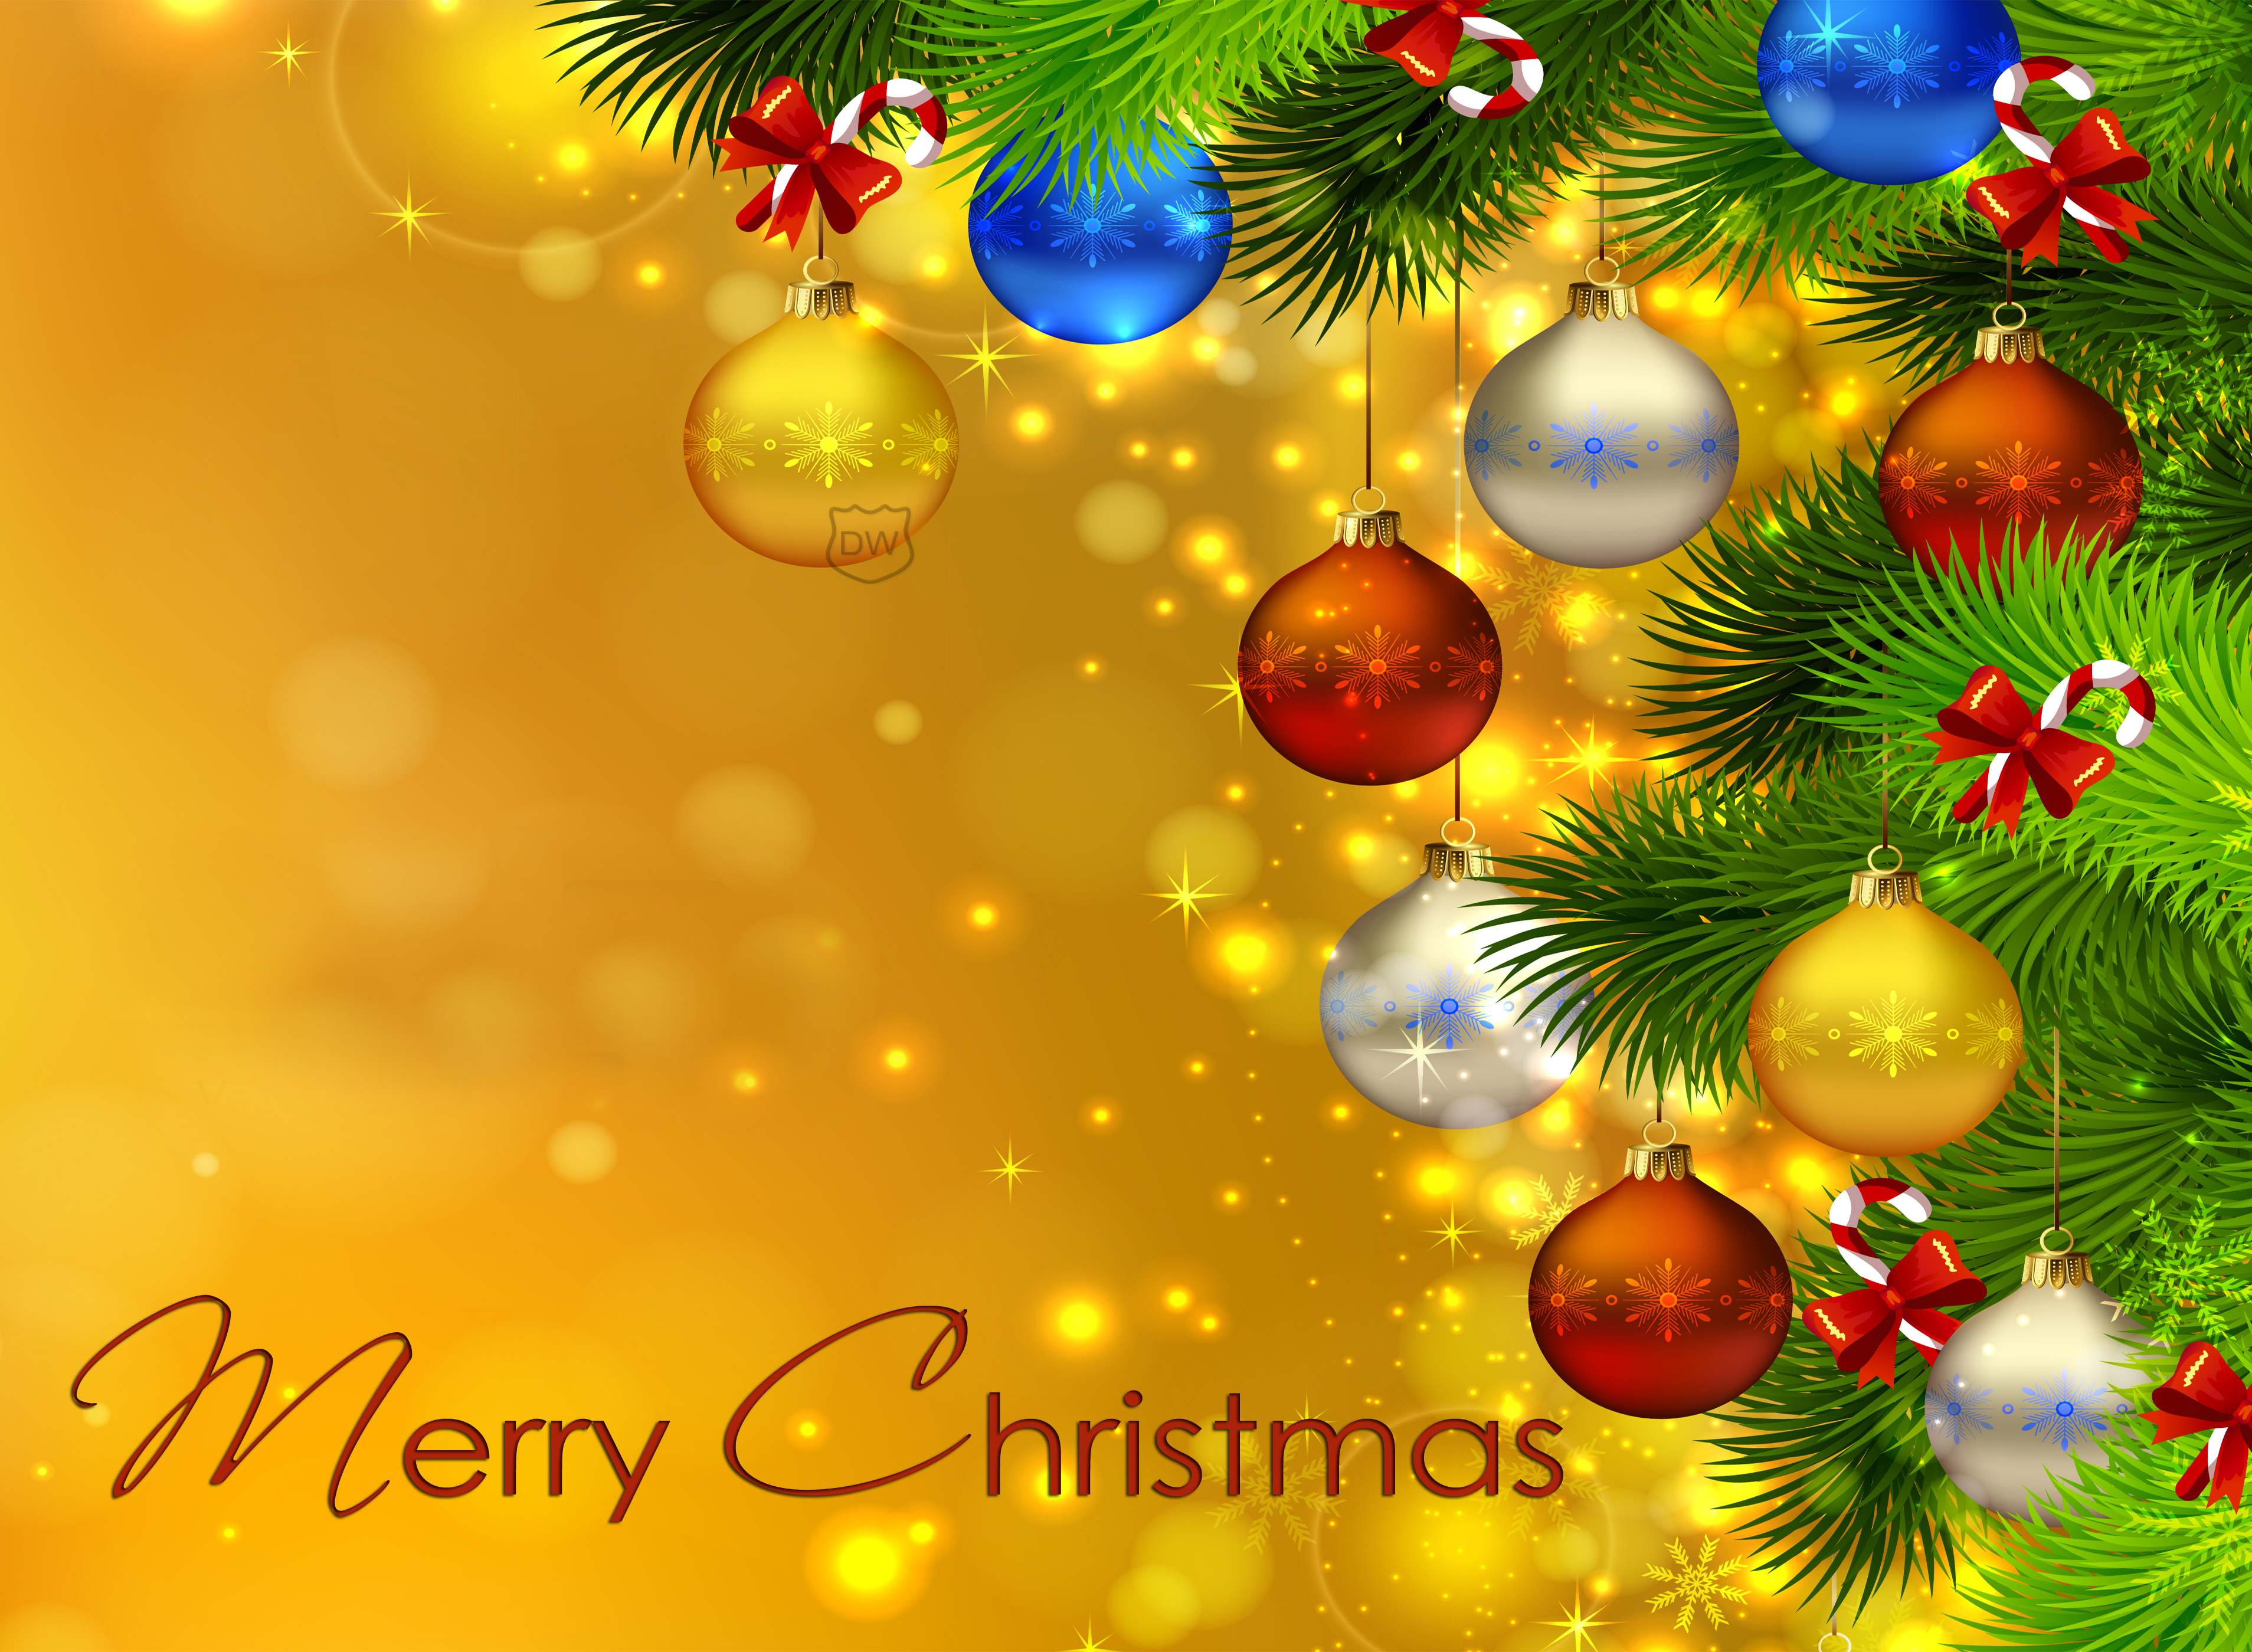 Christmas Wall Paper.Colorful Christmas Ornaments Hd Wallpaper Background Image